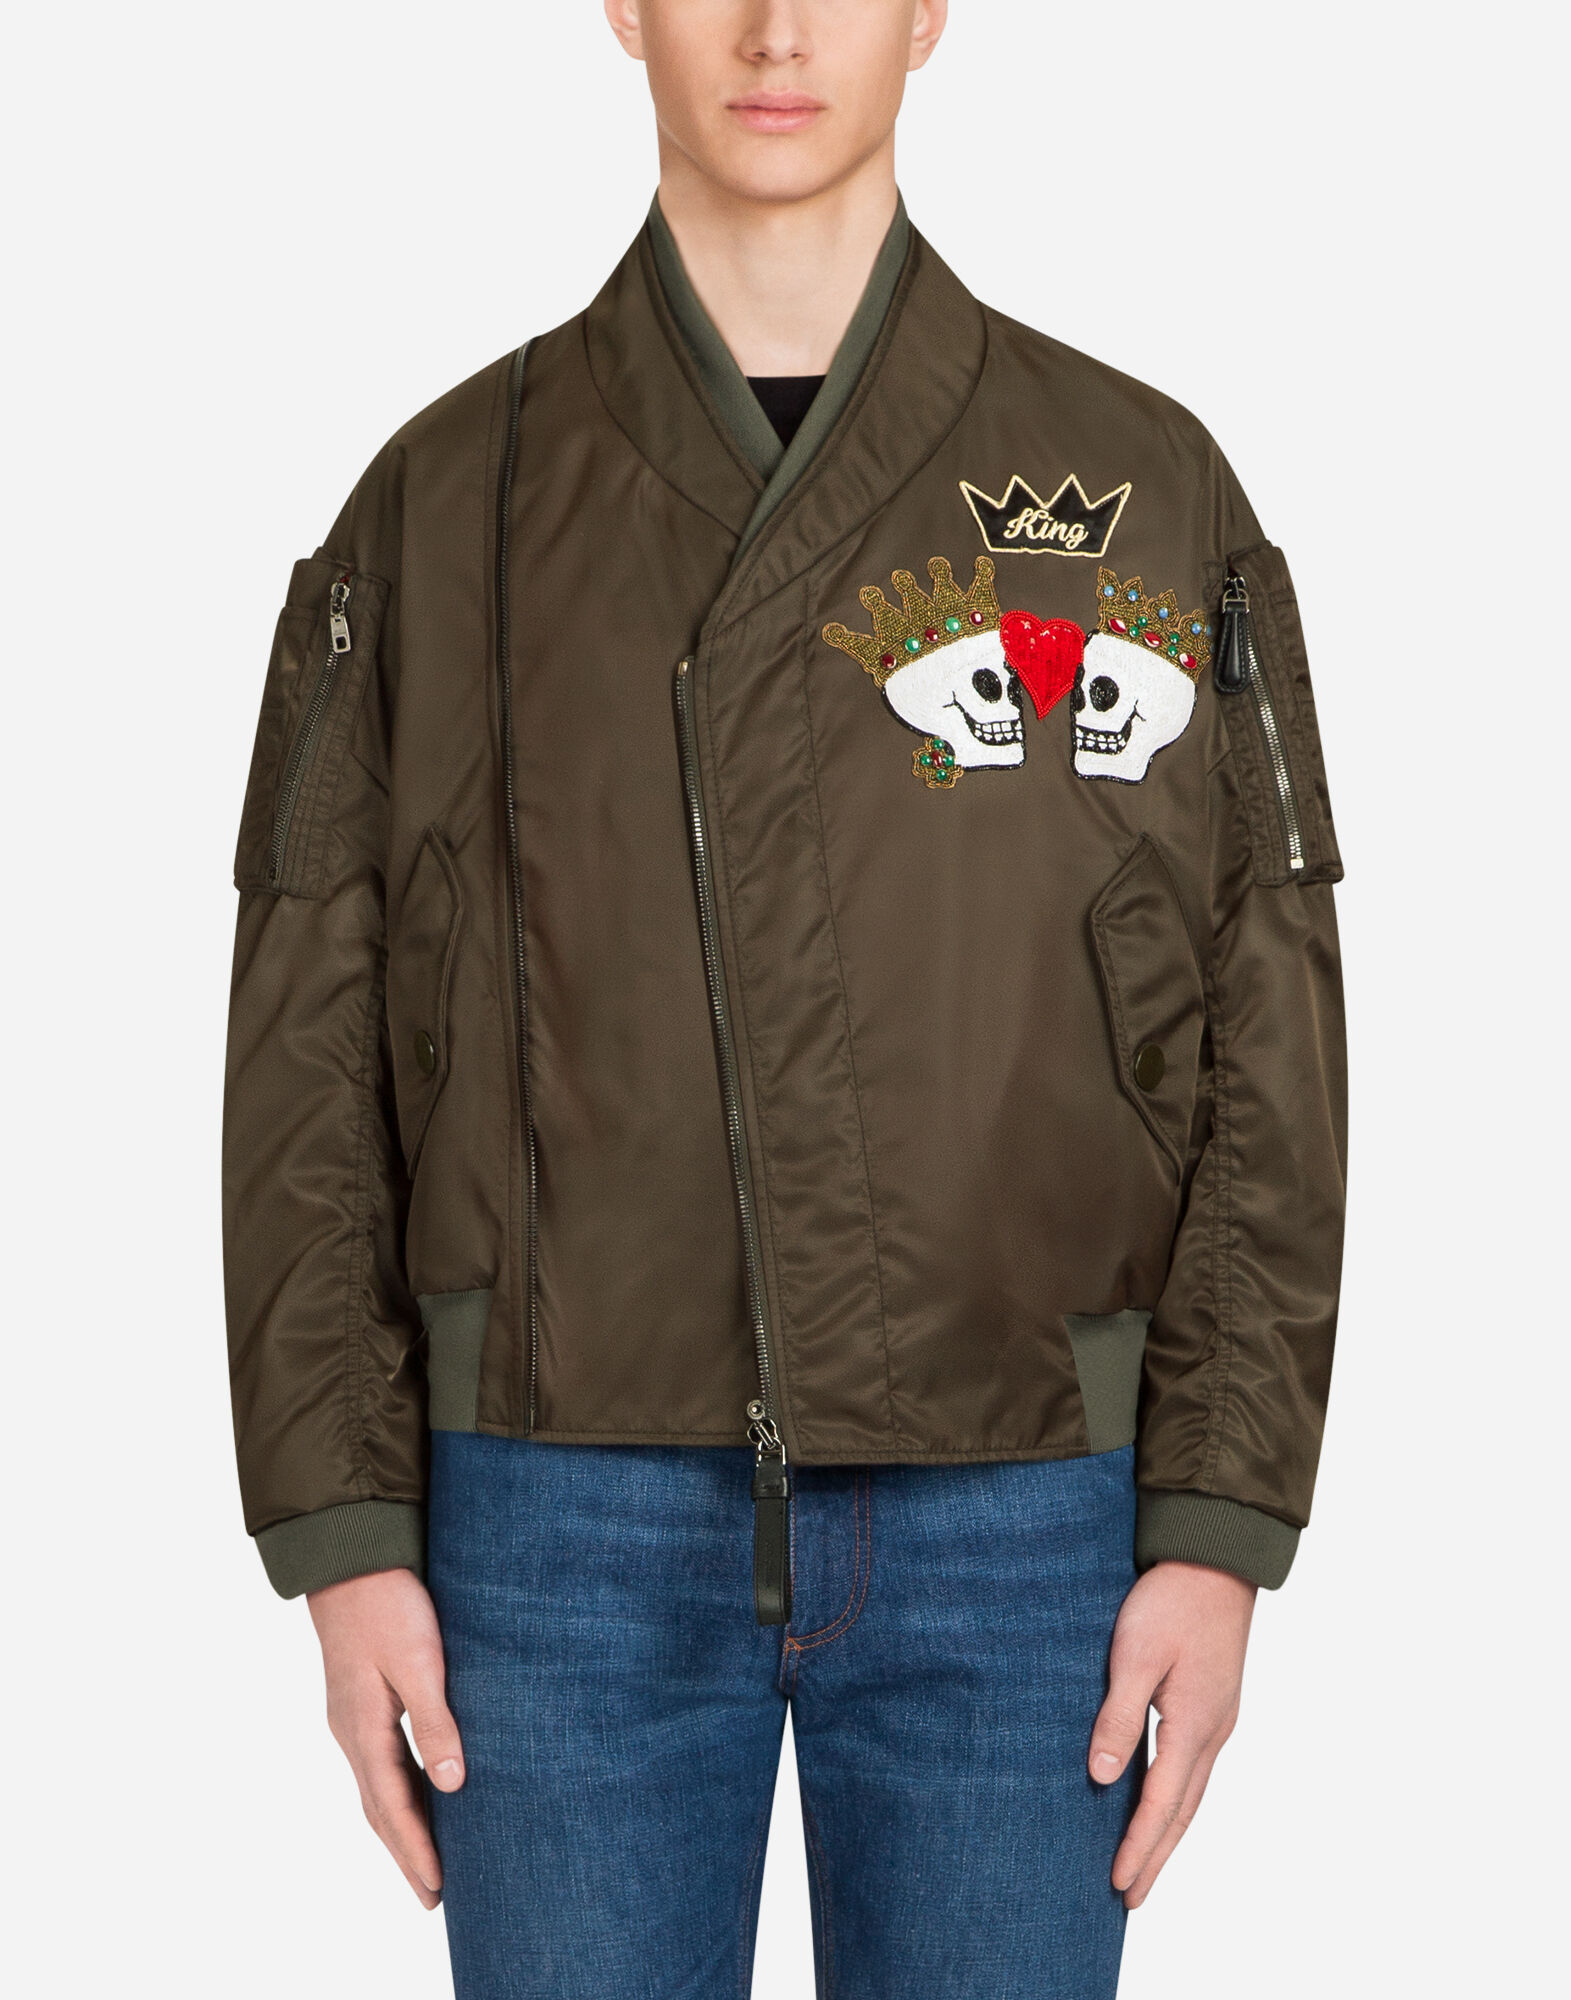 NYLON BOMBER JACKET WITH PATCHES from DOLCE & GABBANA